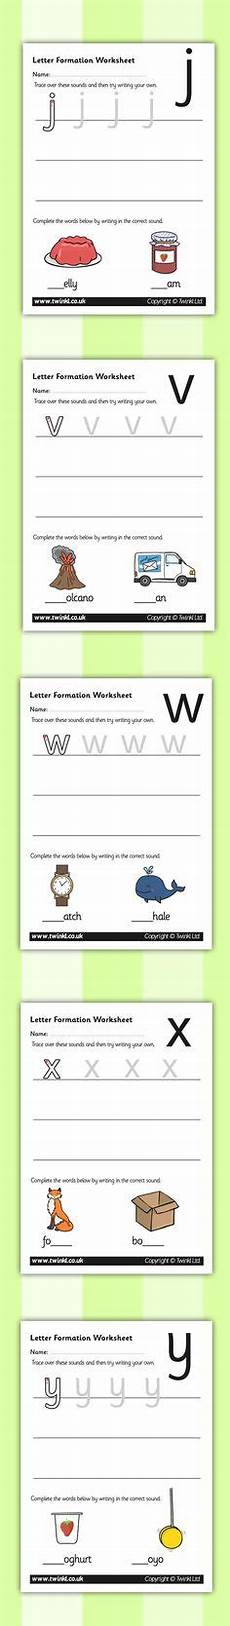 worksheets twinkl 19073 twinkl resources gt gt a z alphabet mat phase 1 gt gt printable resources for primary eyfs ks1 and